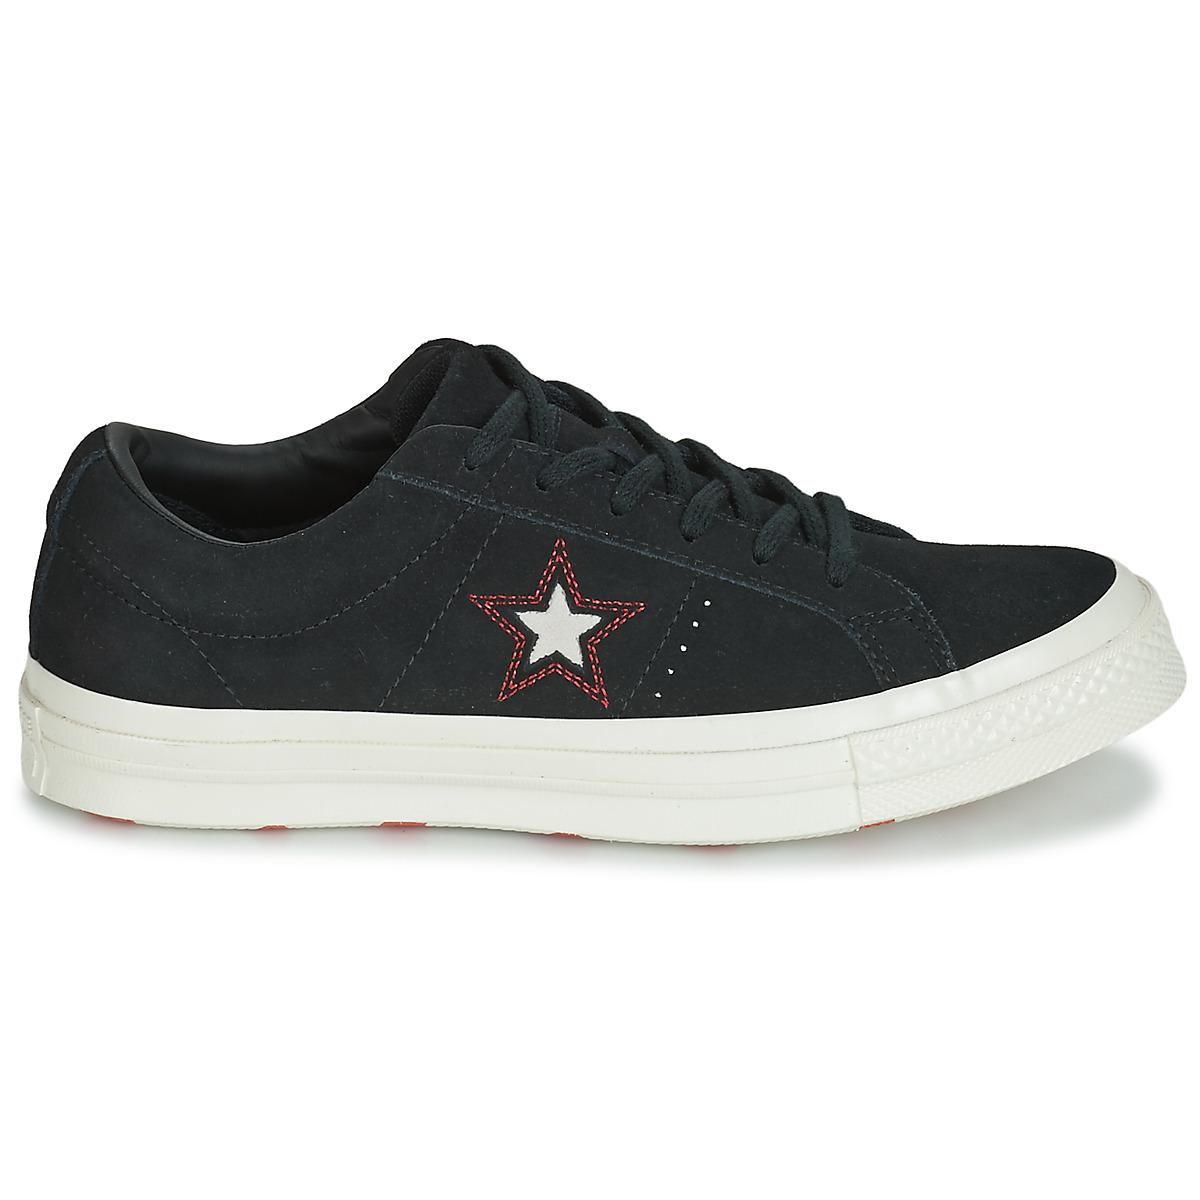 In Love Ox Shoes Details Suede The Black trainers Converse View Star fullscreen One wIWqtwBO